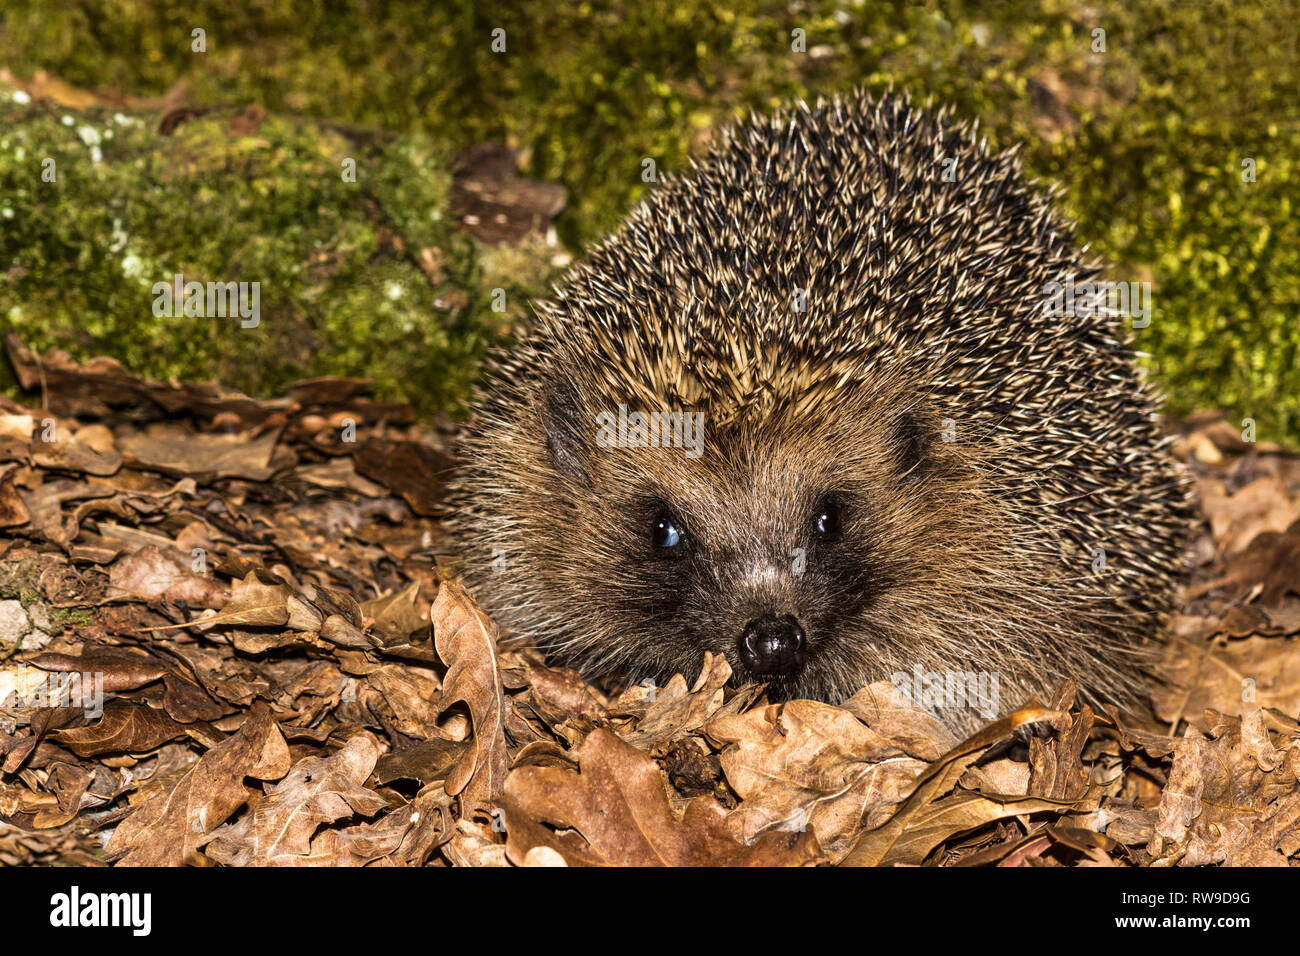 European Hedgehog (Erinaceus europaeus).Adult in autumn in the early evening searching for food.Southwest France. - Stock Image